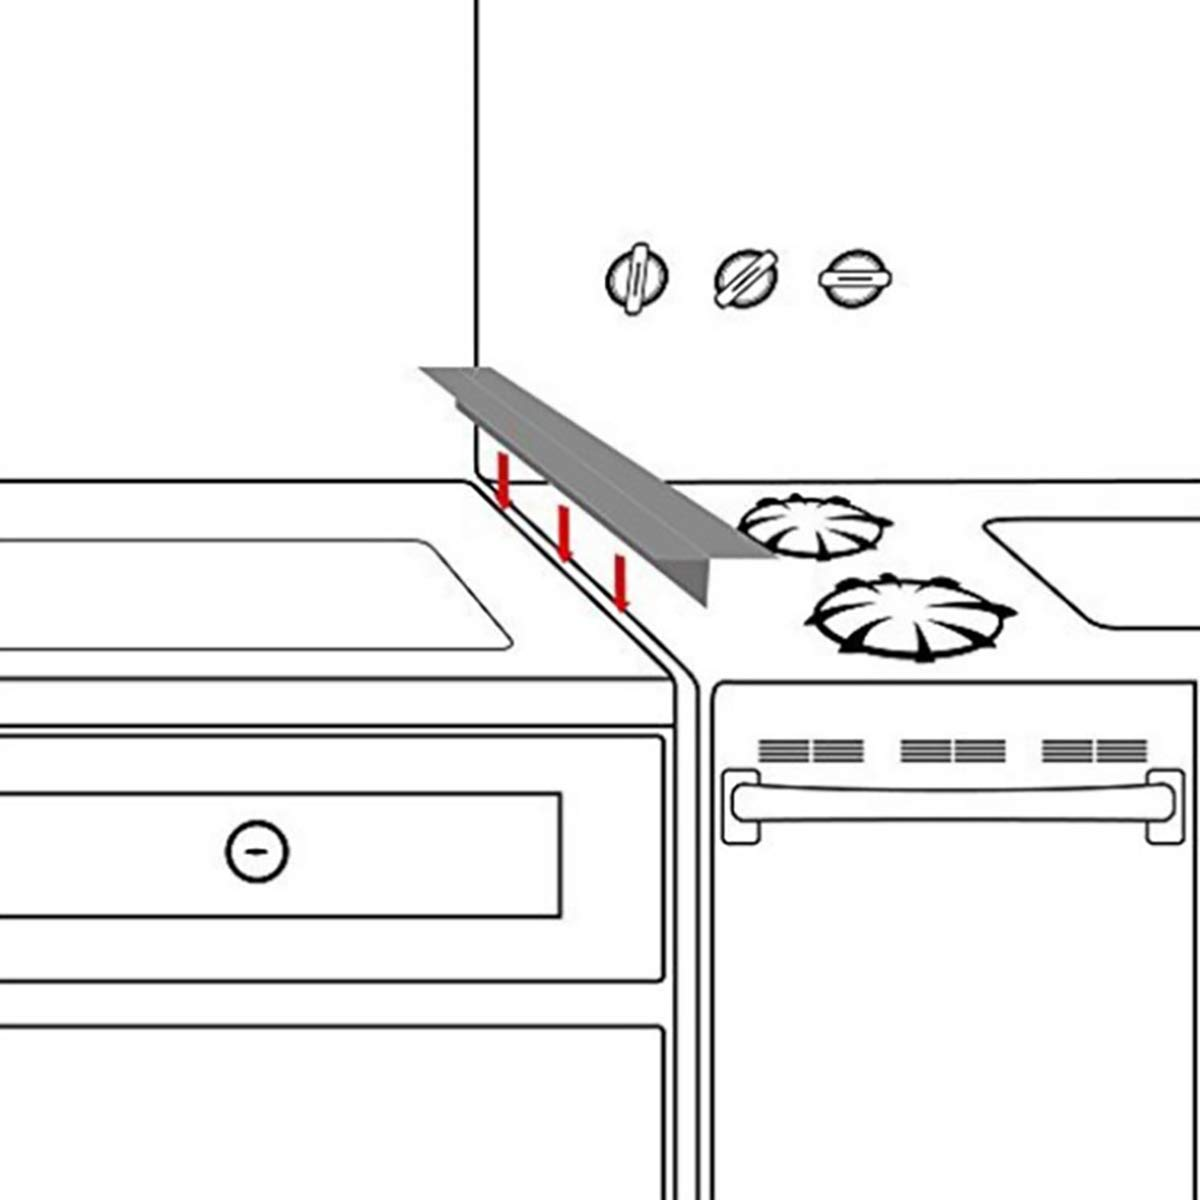 Kitchen Appliances 2 Pack 21 Long /& 2.2 Wide Gap Filler for Oven Protector Countertop Heat-Resistant and Easy Clean Silicone Kitchen Stove Counter Gap Cover